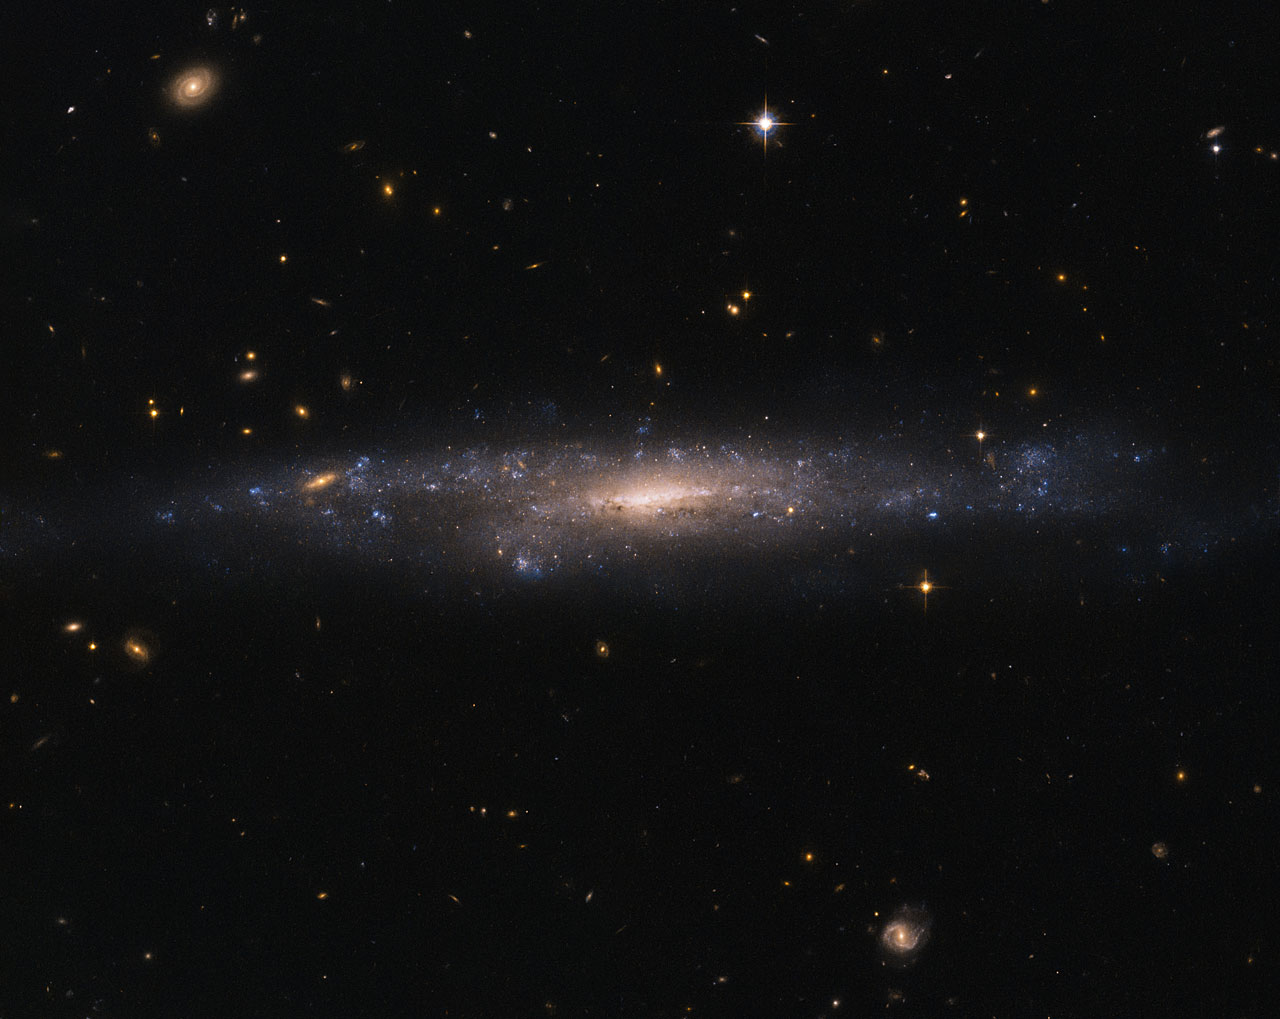 This striking NASA/ESA Hubble Space Telescope image captures the galaxy UGC 477, located just over 110 million light-years away in the constellation of Pisces (The Fish). UGC 477 is a low surface brightness (LSB) galaxy. First proposed in 1976 by Mike Disney, the existence of LSB galaxies was confirmed only in 1986 with the discovery of Malin 1. LSB galaxies like UGC 477 are more diffusely distributed than galaxies such as Andromeda and the Milky Way. With surface brightnesses up to 250 times fainter than the night sky, these galaxies can be incredibly difficult to detect.  Most of the matter present in LSB galaxies is in the form of hydrogen gas, rather than stars. Unlike the bulges of normal spiral galaxies, the centres of LSB galaxies do not contain large numbers of stars. Astronomers suspect that this is because LSB galaxies are mainly found in regions devoid of other galaxies, and have therefore experienced fewer galactic interactions and mergers capable of triggering high rates of star formation. LSB galaxies such as UGC 477 instead appear to be dominated by dark matter, making them excellent objects to study to further our understanding of this elusive substance. However, due to an underrepresentation in galactic surveys — caused by their characteristic low brightness — their importance has only been realised relatively recently.